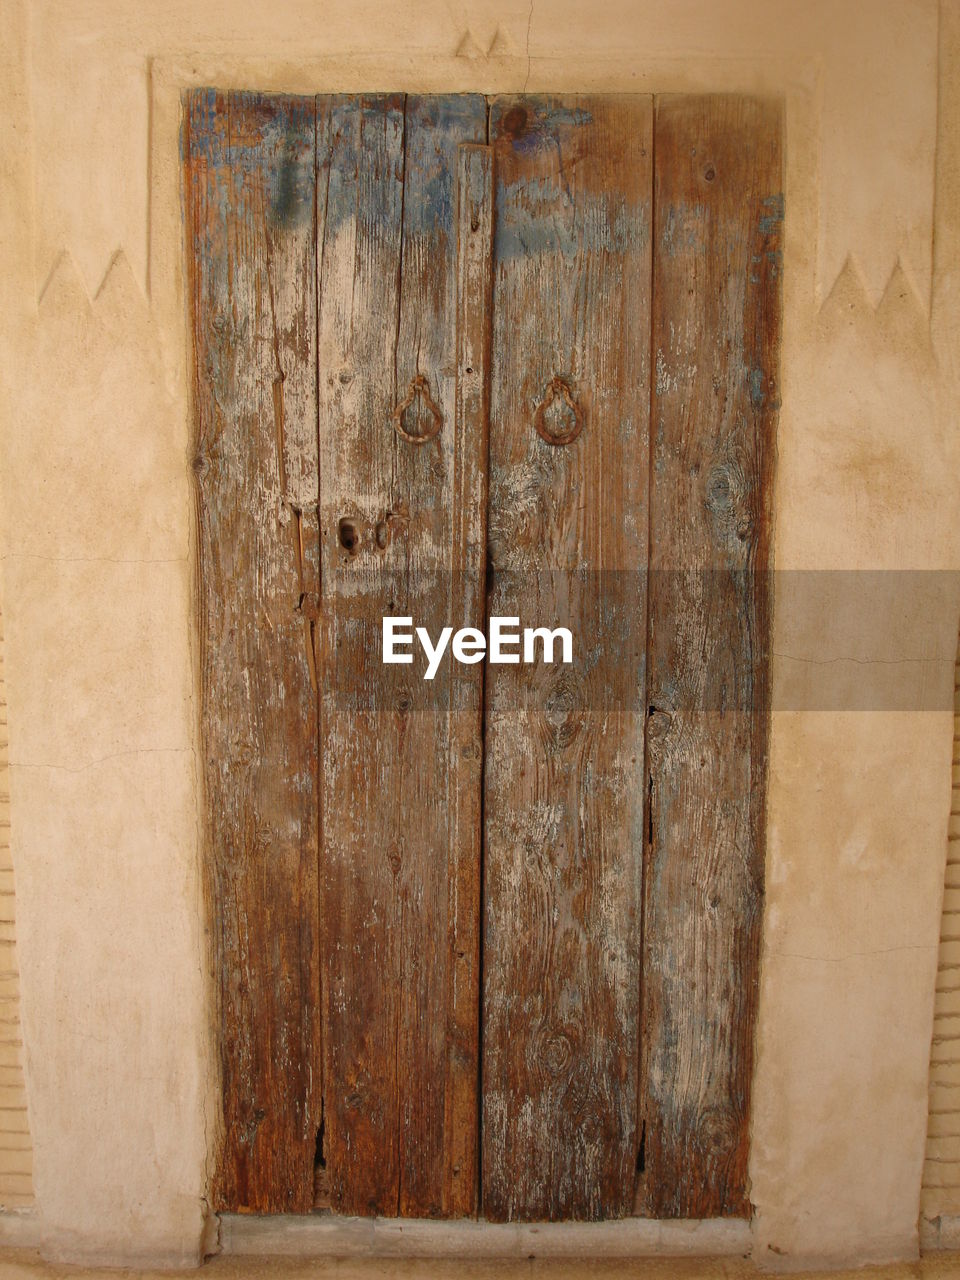 wood - material, no people, entrance, door, brown, architecture, wood, old, indoors, plank, built structure, wall - building feature, backgrounds, weathered, close-up, pattern, safety, textured, closed, security, antique, wood grain, dirty